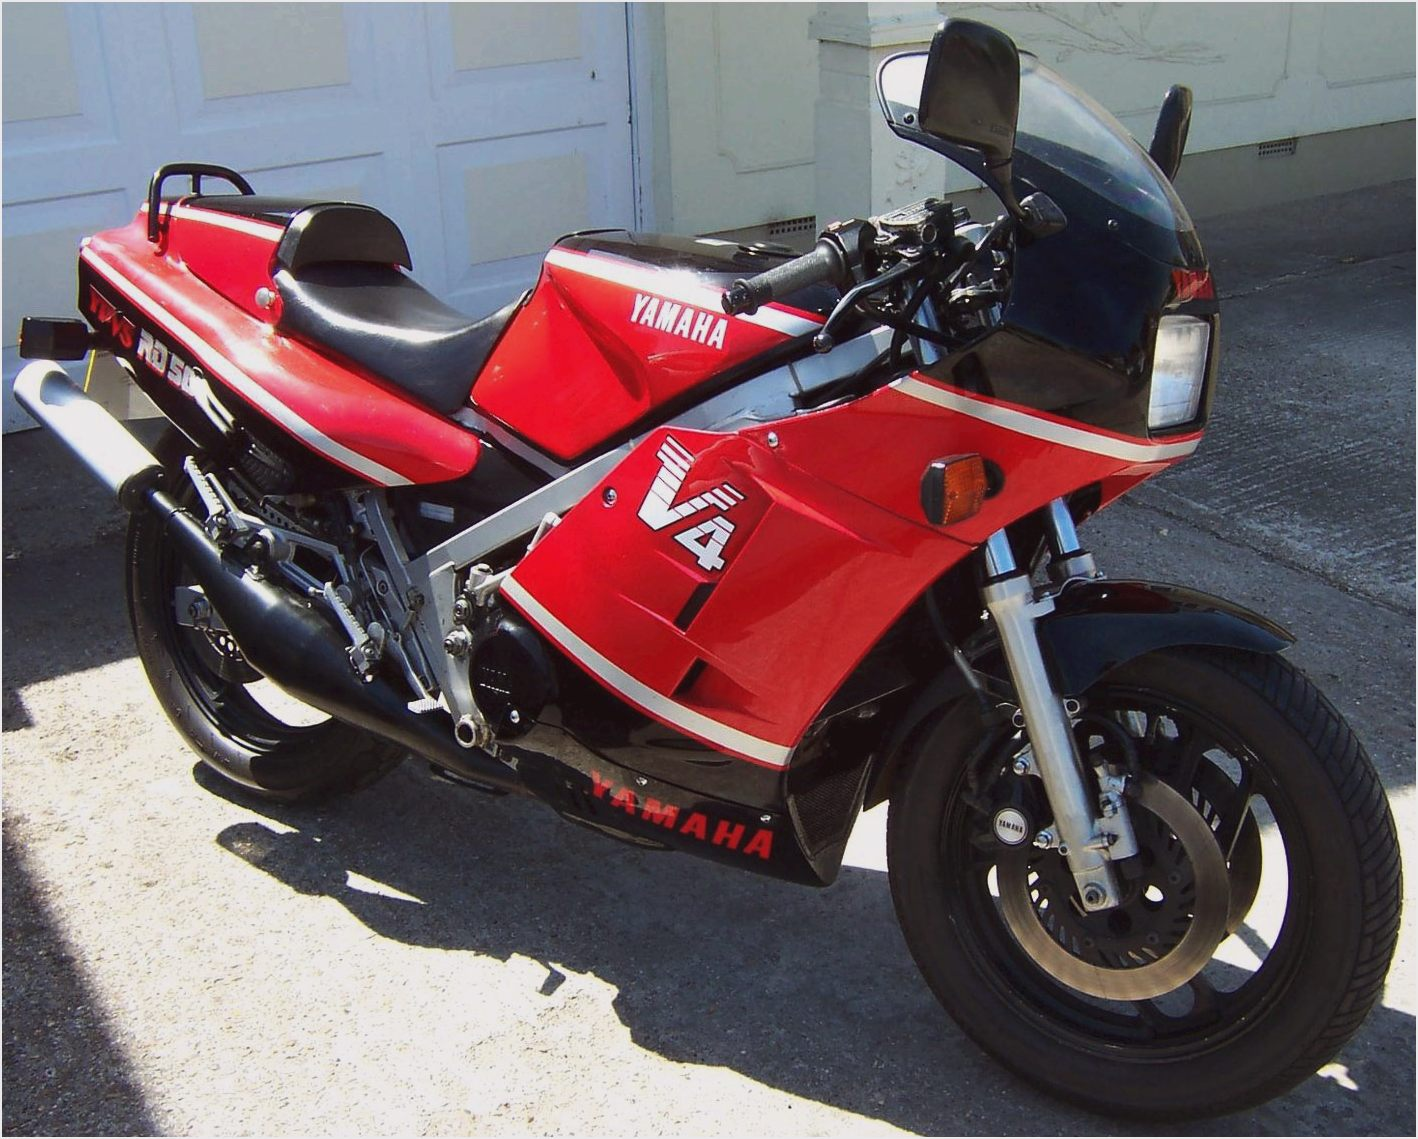 Yamaha RD 500 LC 1985 images #90052